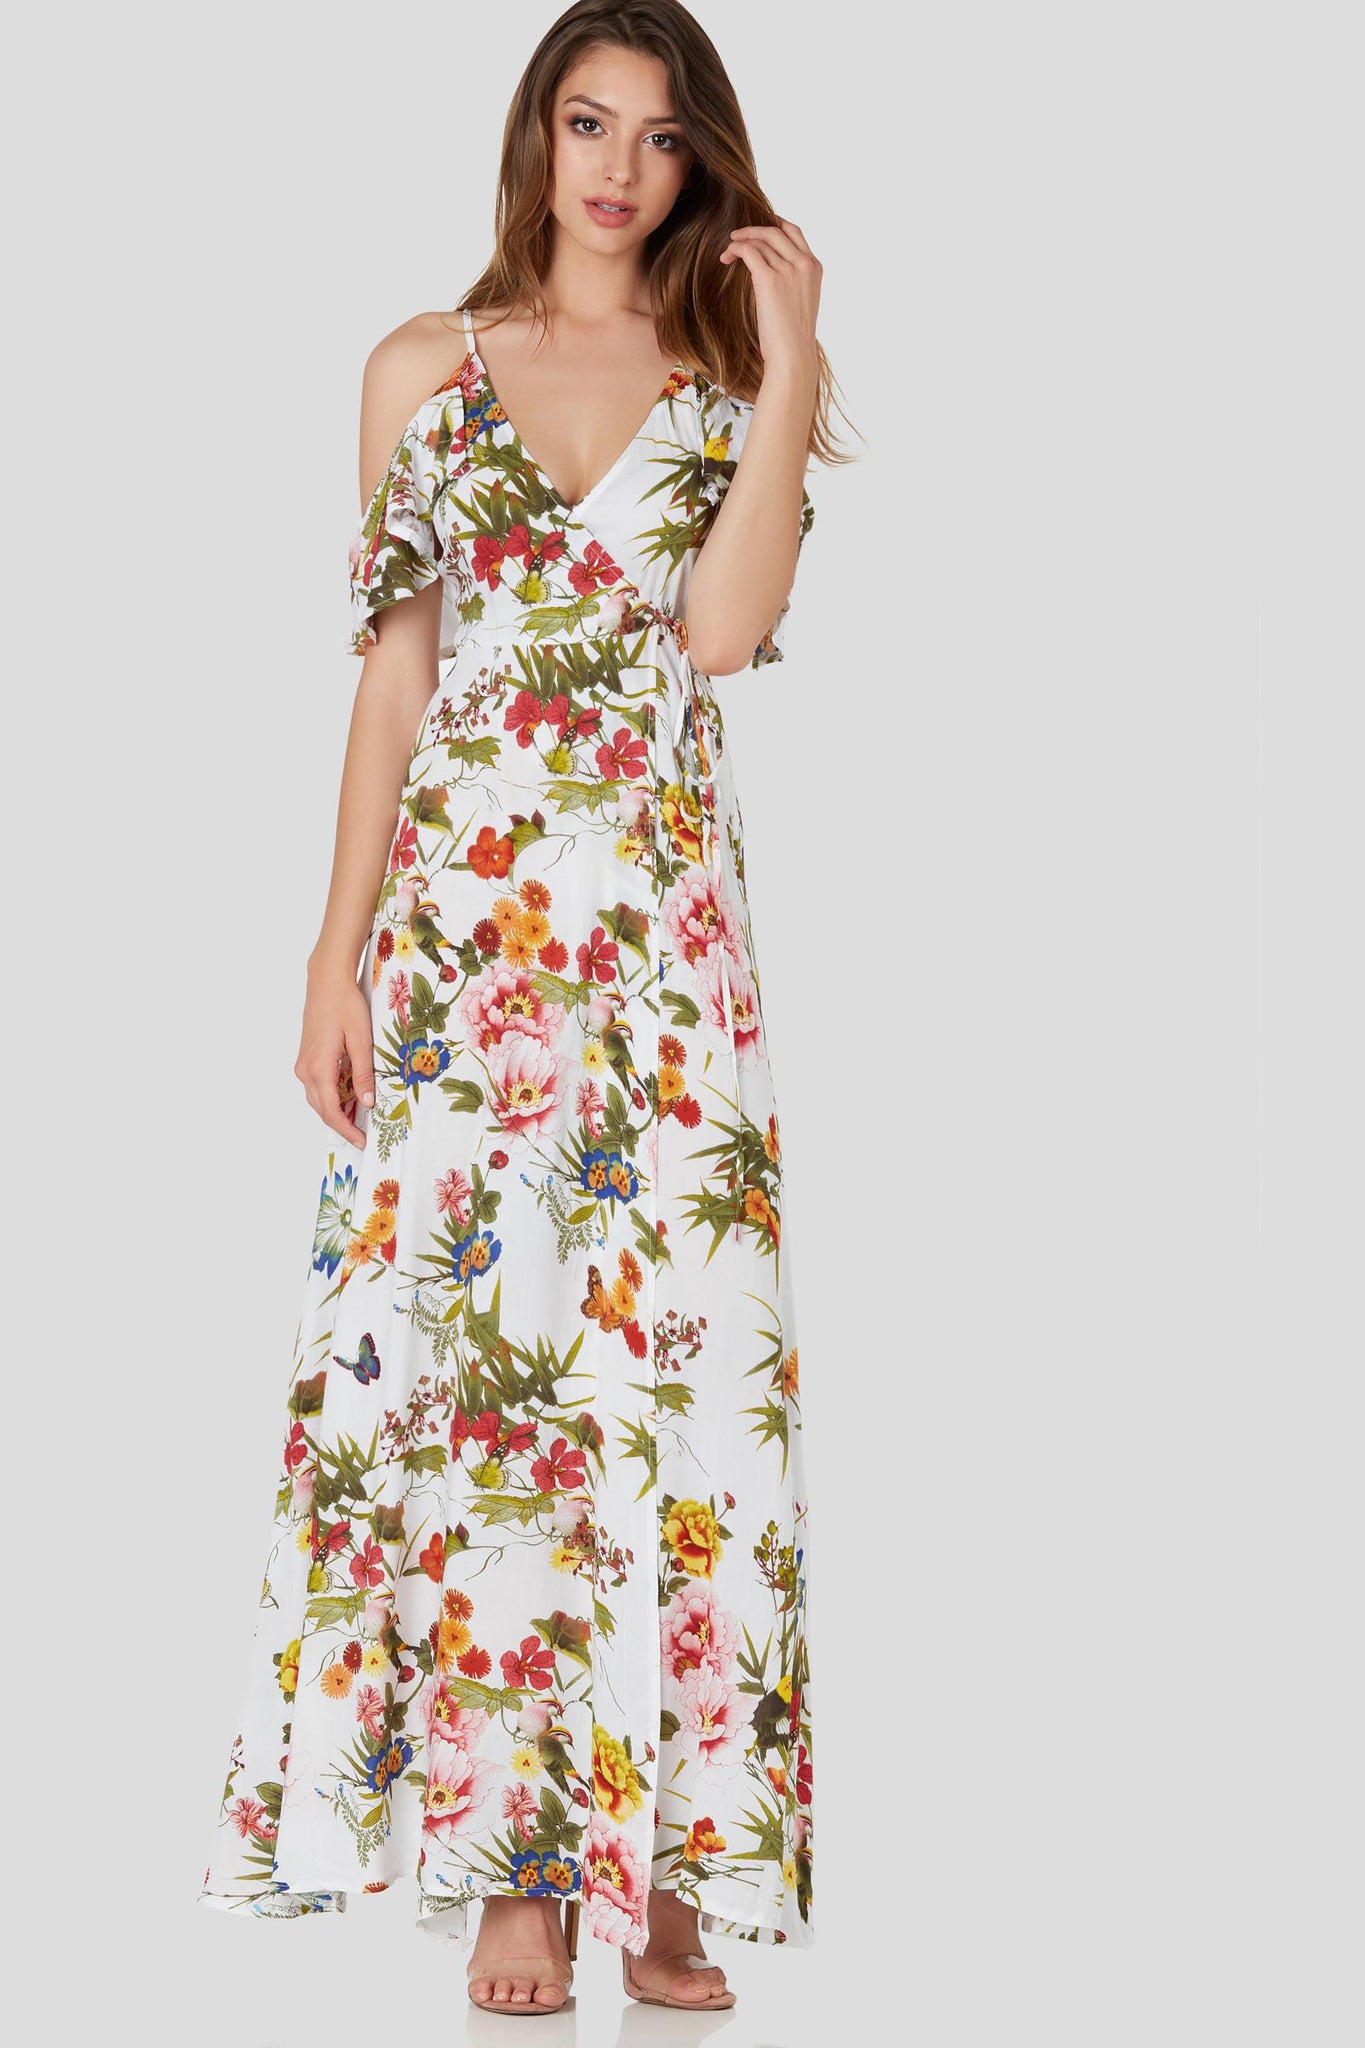 Flowy cold shoulder maxi dress with colorful floral patterns throughout. Flirty ruffle sleeves with wrap front closure.